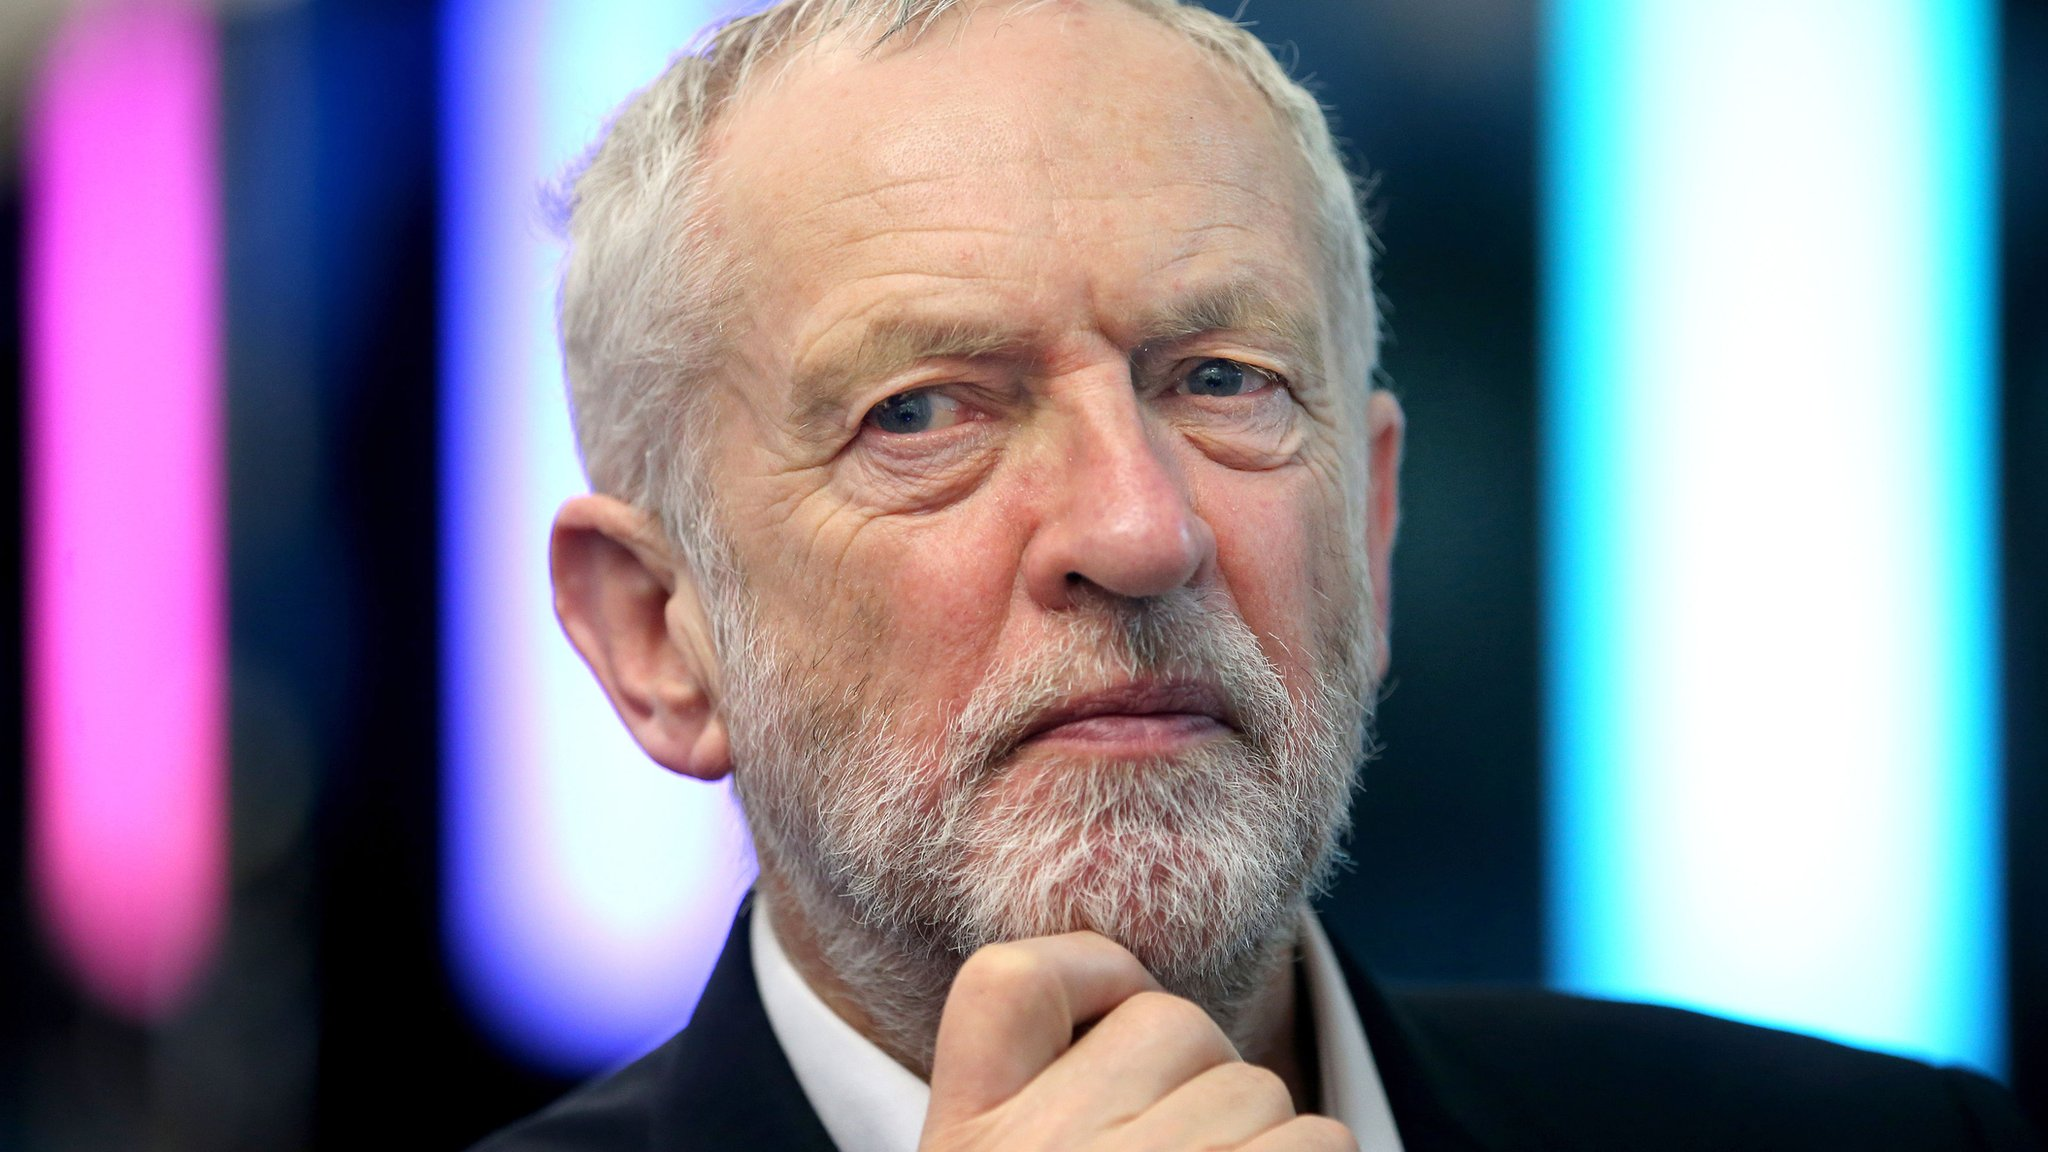 Labour facing showdown over anti-Semitism policy